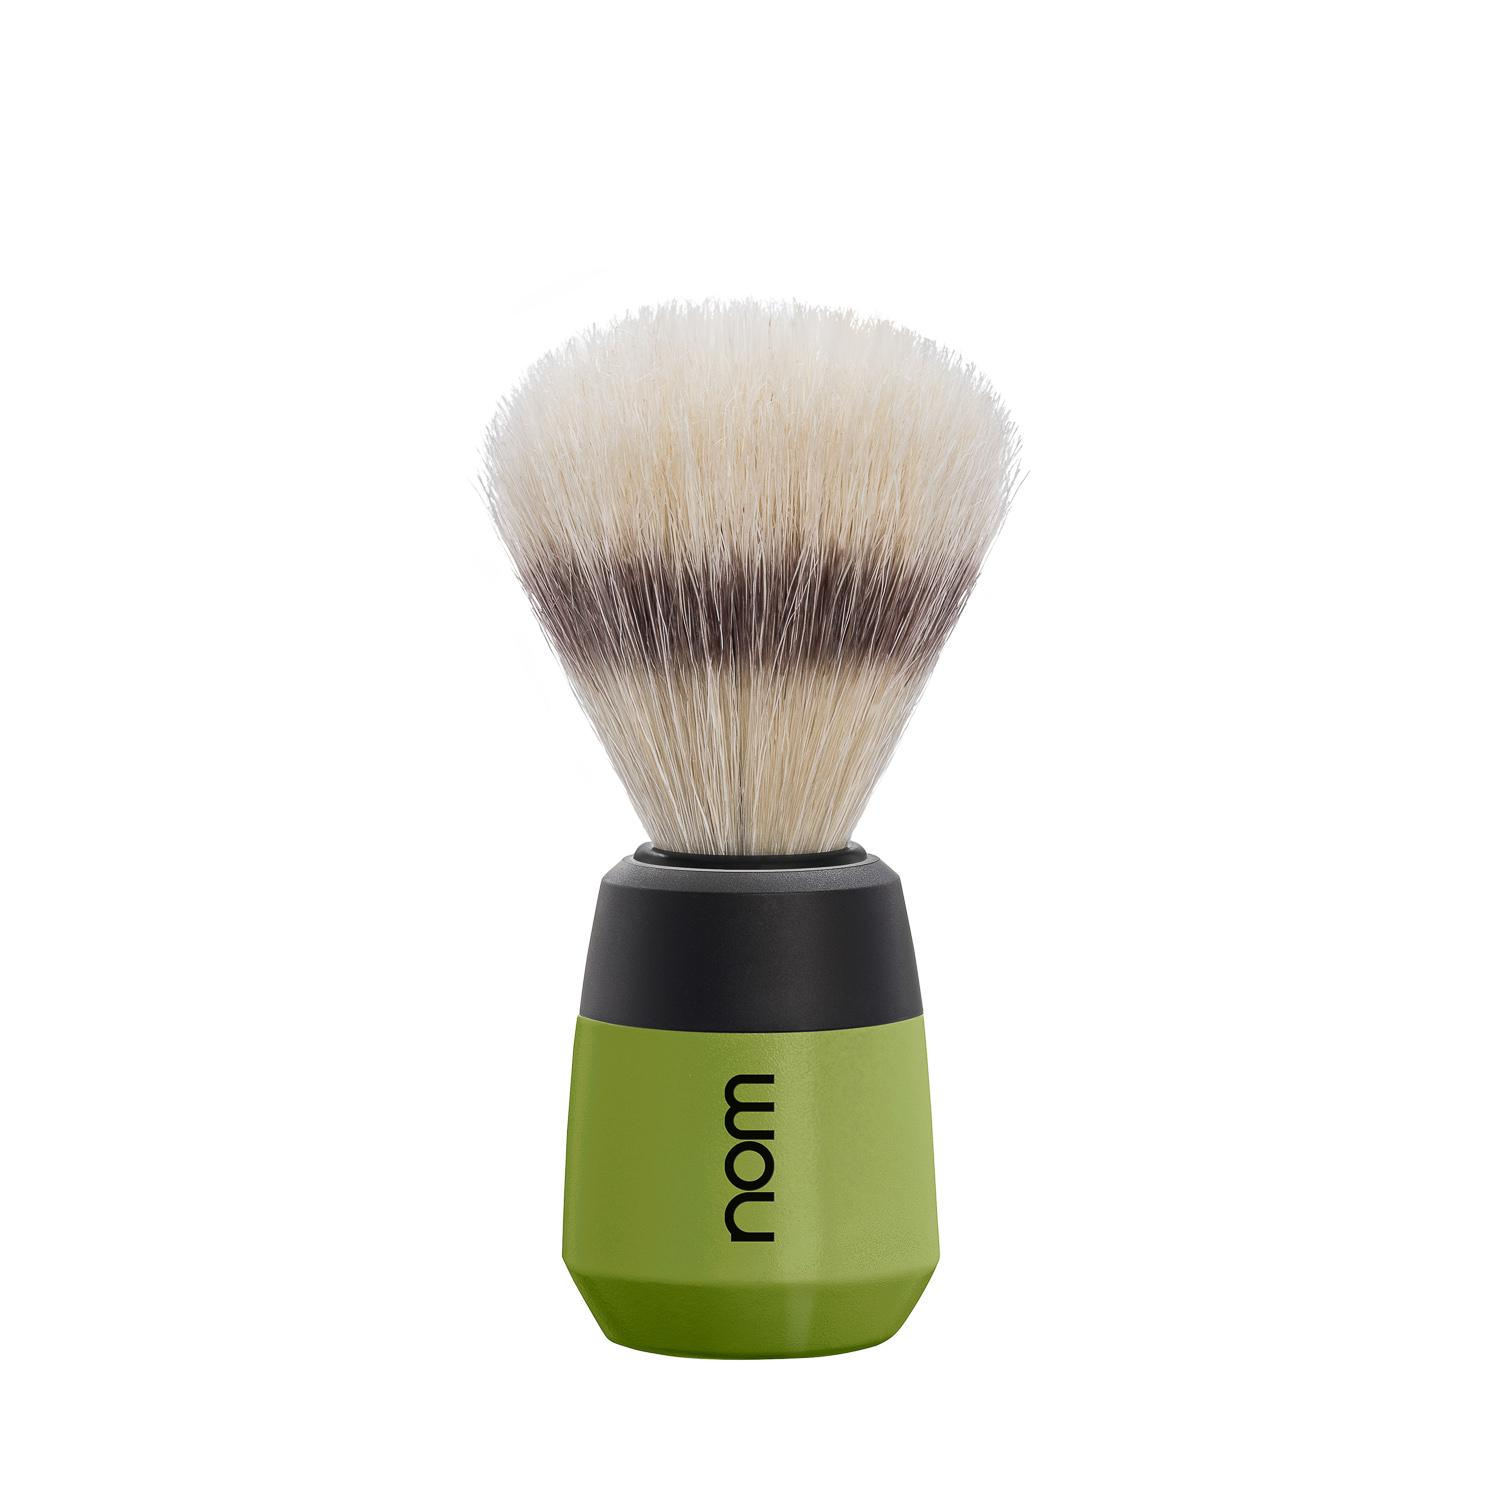 nom MAX, Olive, Natural Bristle Shaving Brush